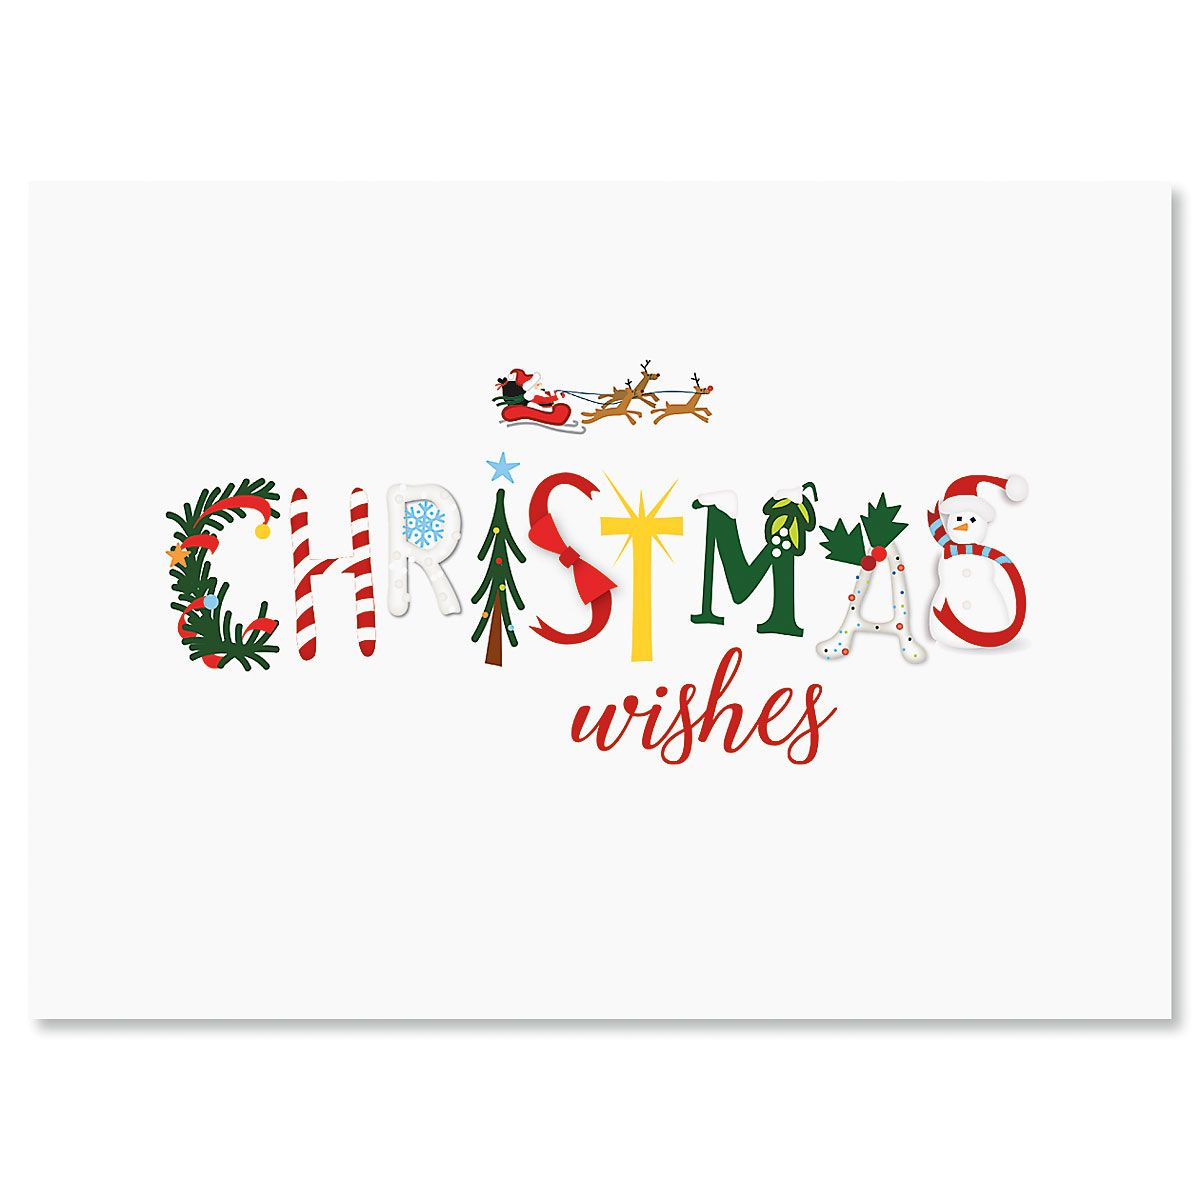 Merry Christmas Icons Nonpersonalized Christmas Cards - Set of 72